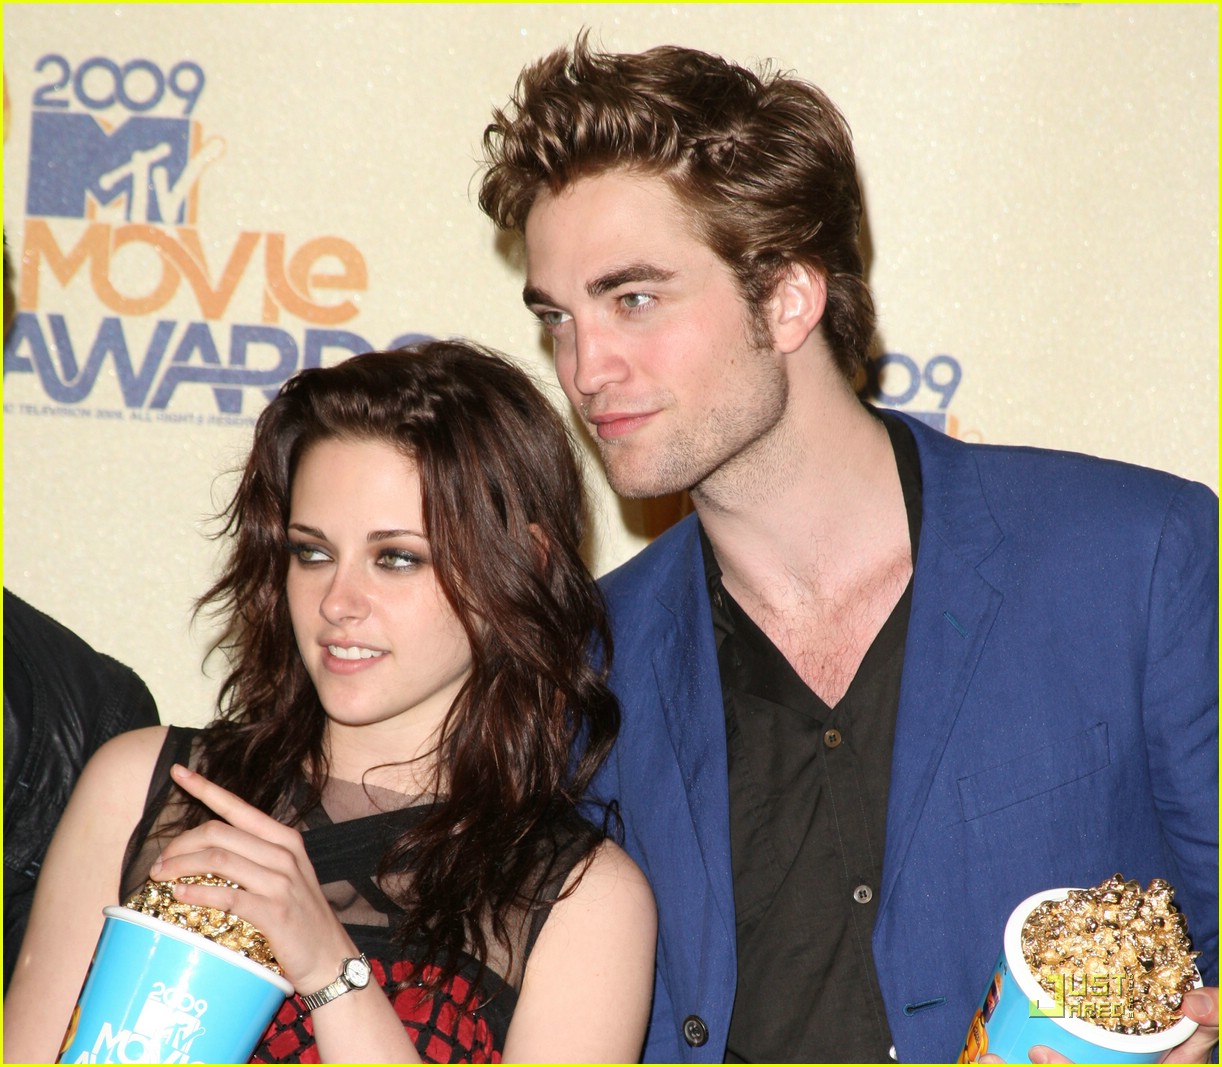 robert pattinson mtv movie awards 2009 20